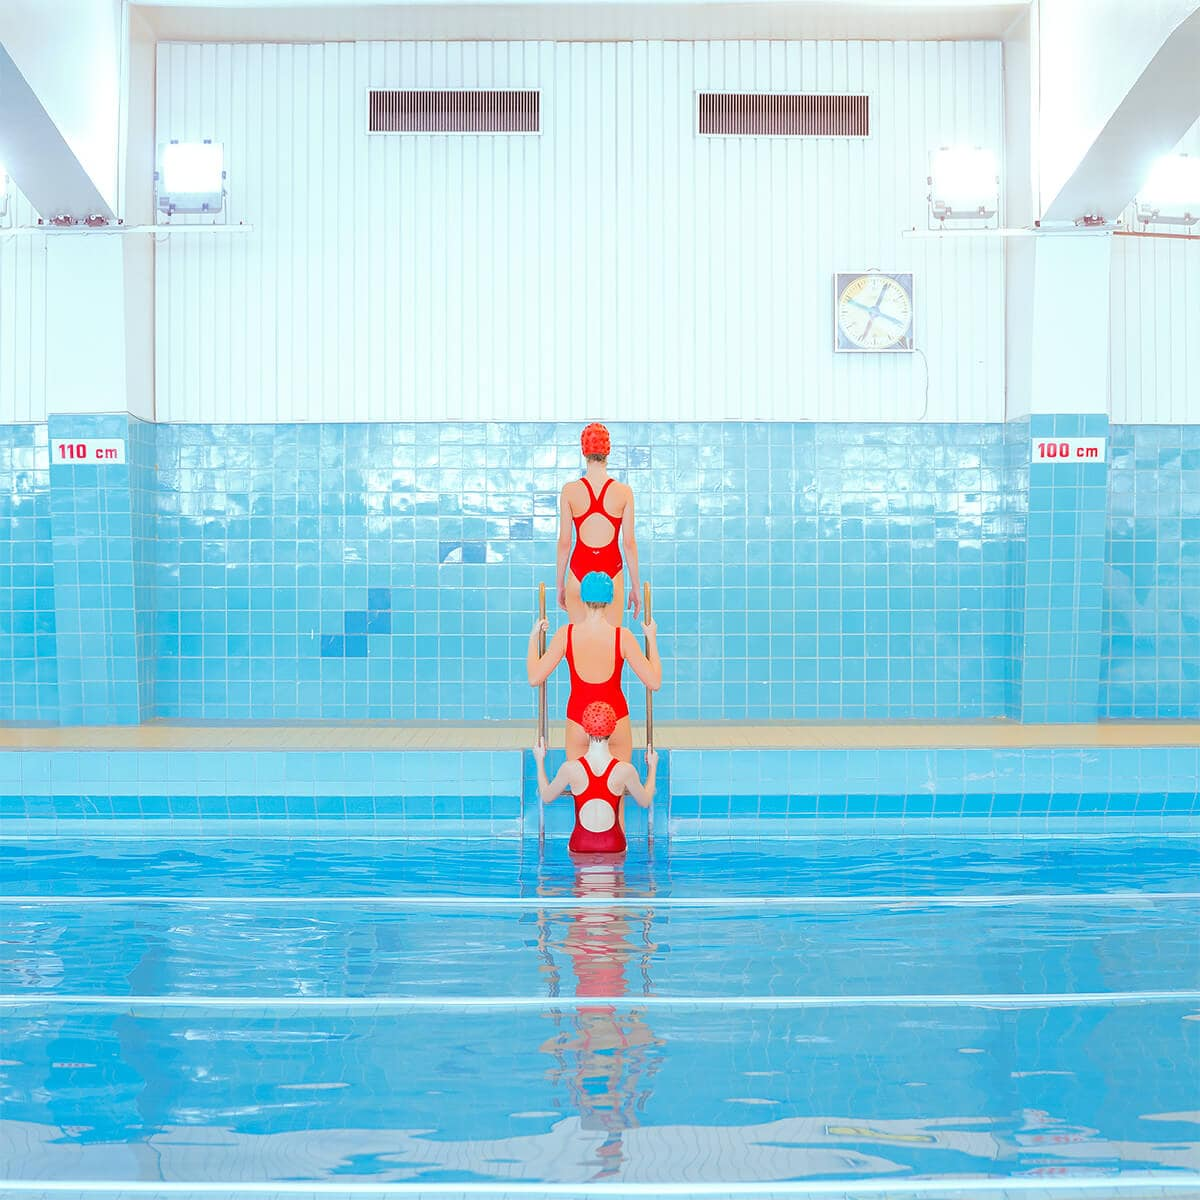 OCD Pleasing Images Captured by Maria Svarbova in Soviet Era Swimming Pools -gohome